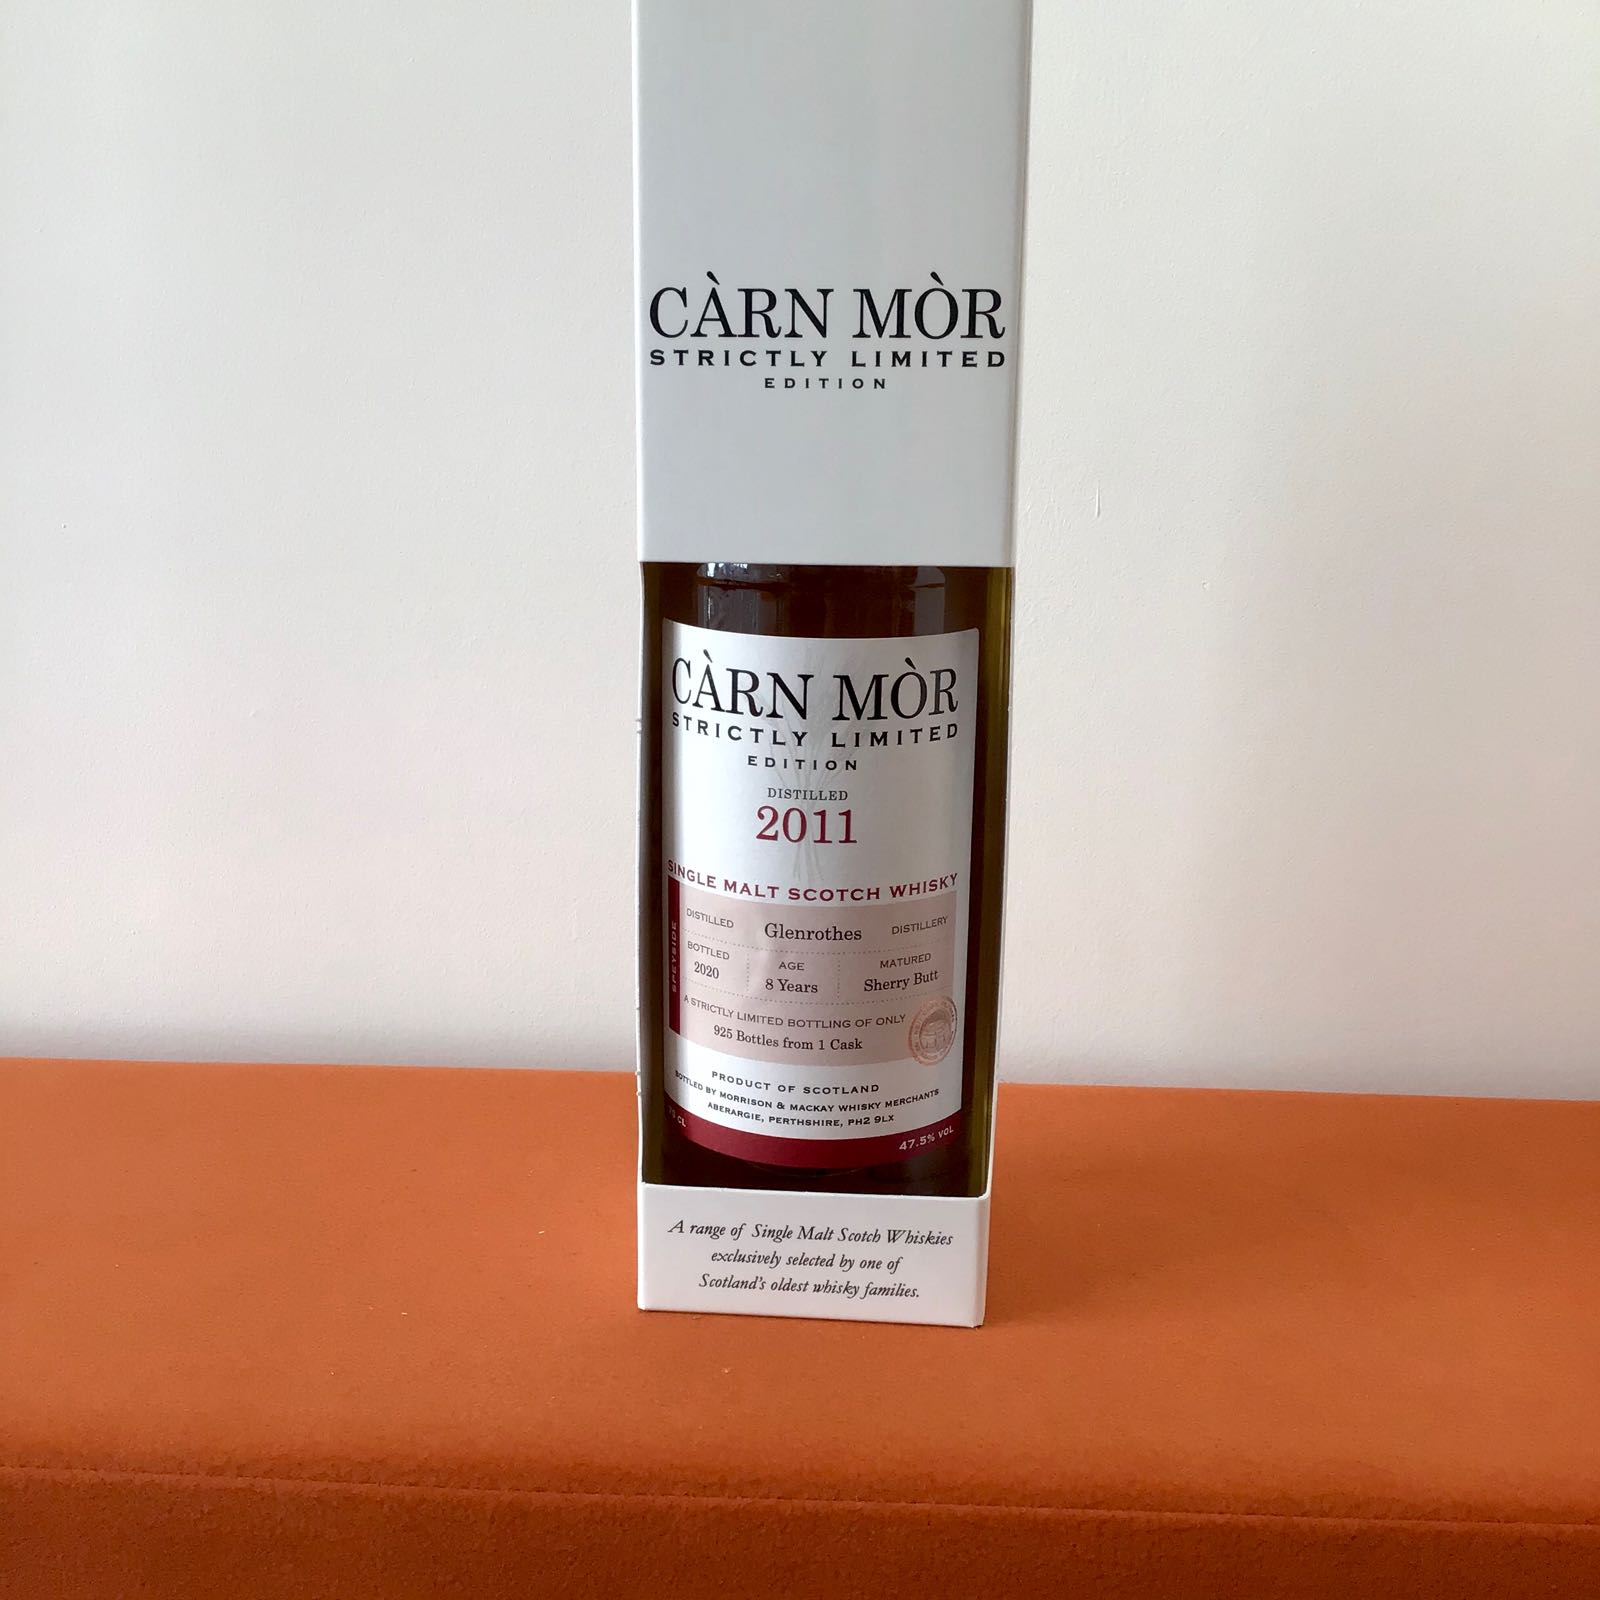 Carn Mor Strictly Limited: Glenrothes (8 Year Old) Sherry Butt